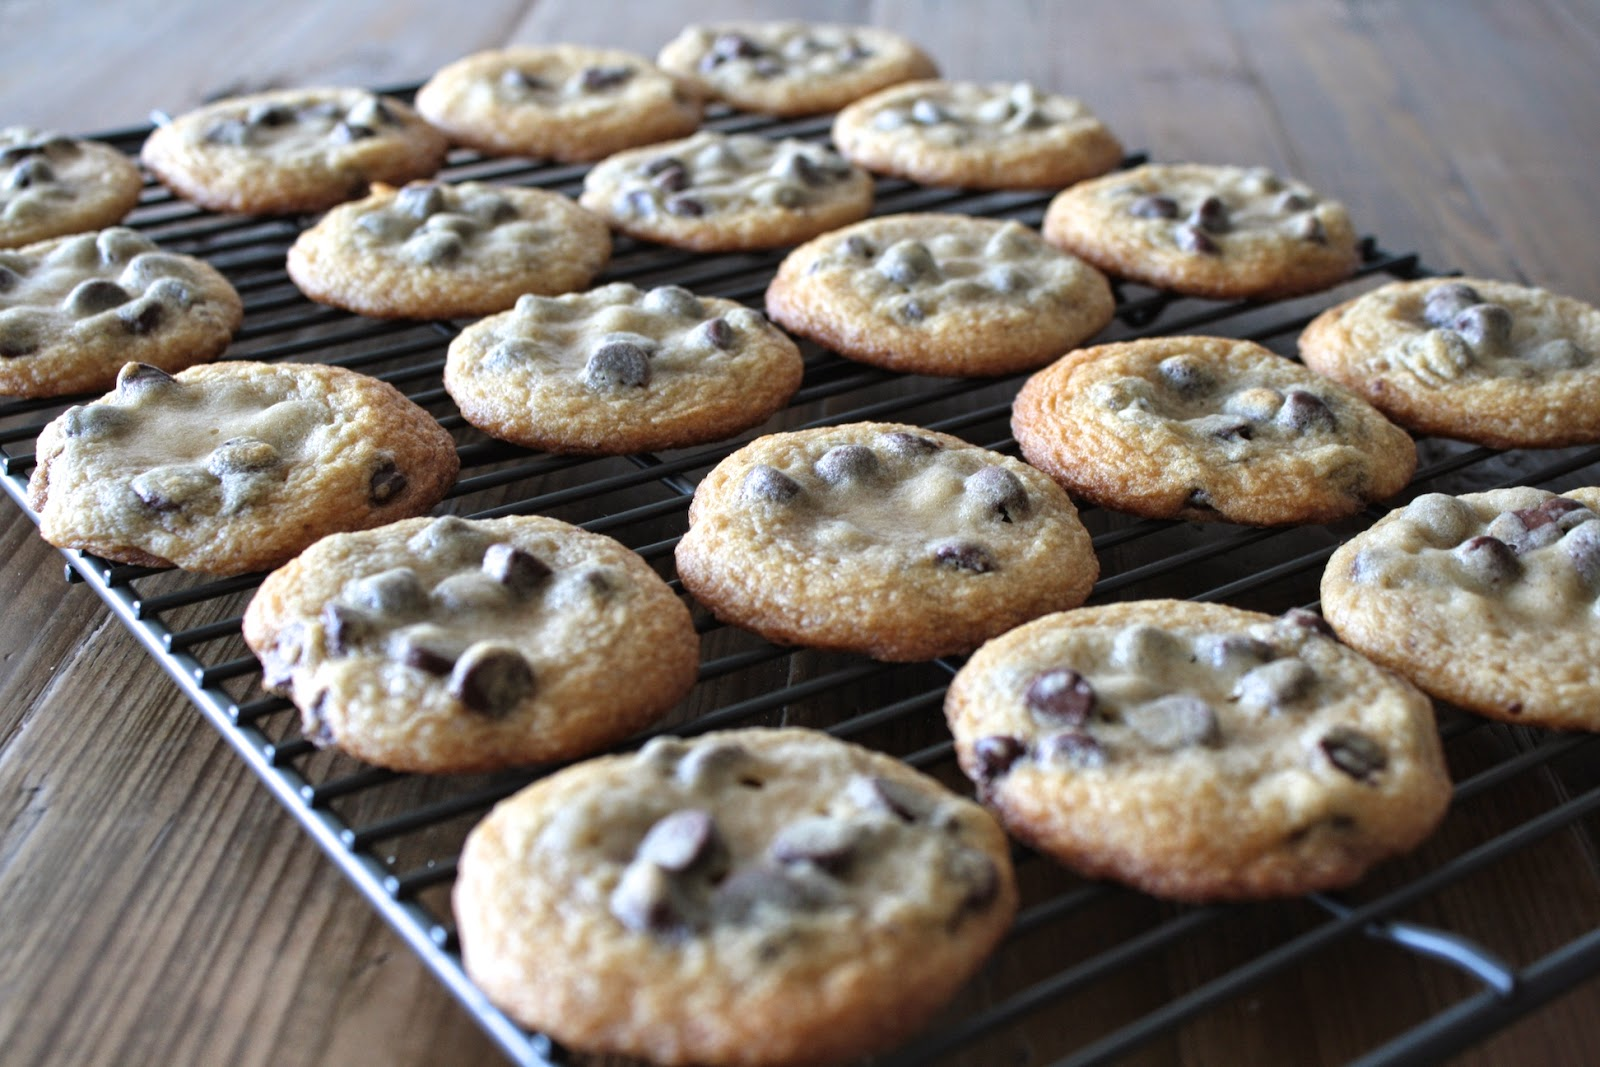 Cookies on a cooling rack.